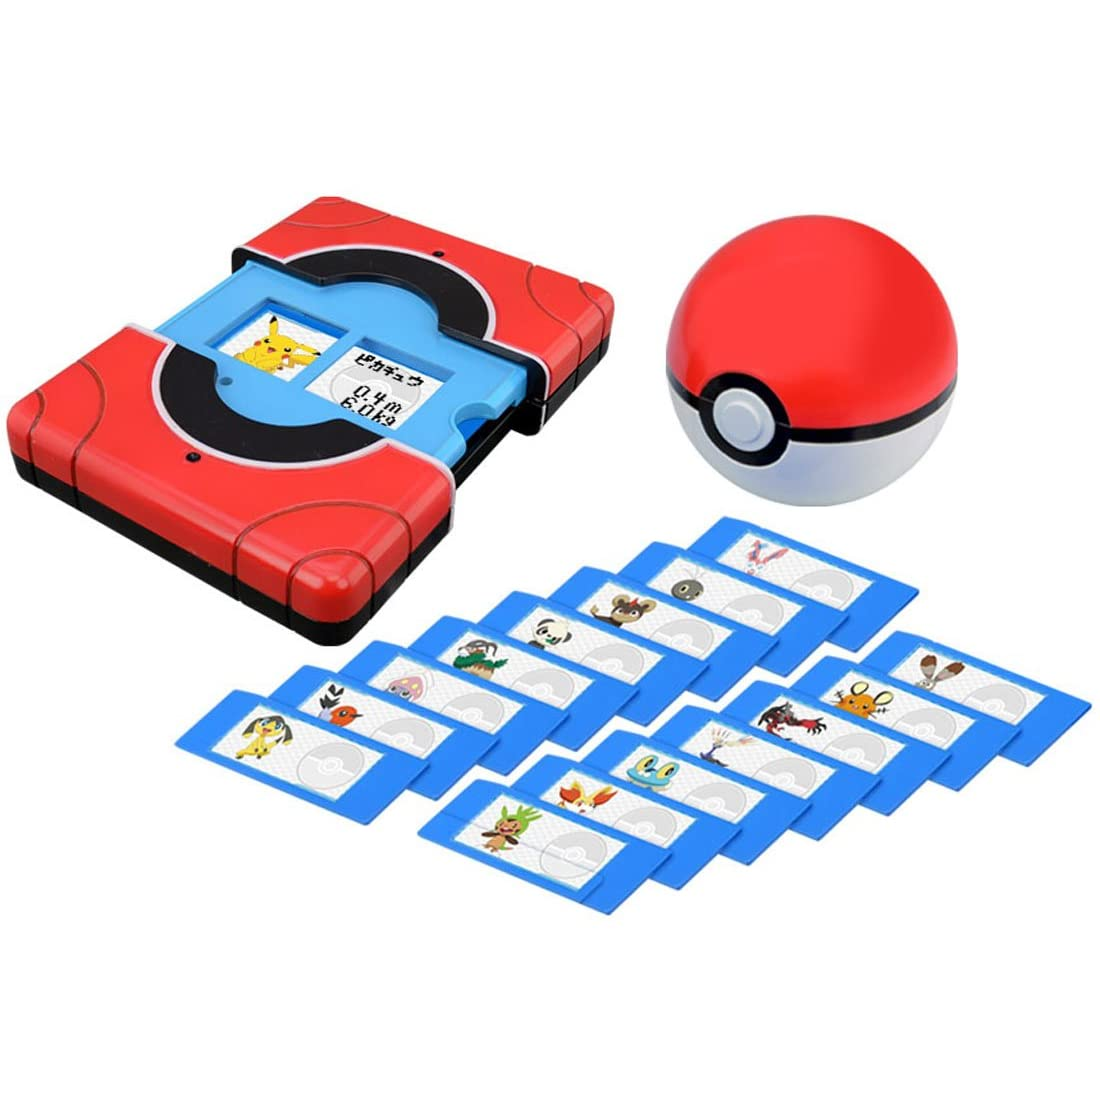 Pokedex Toys Related Keywords - Pokedex Toys Long Tail ...